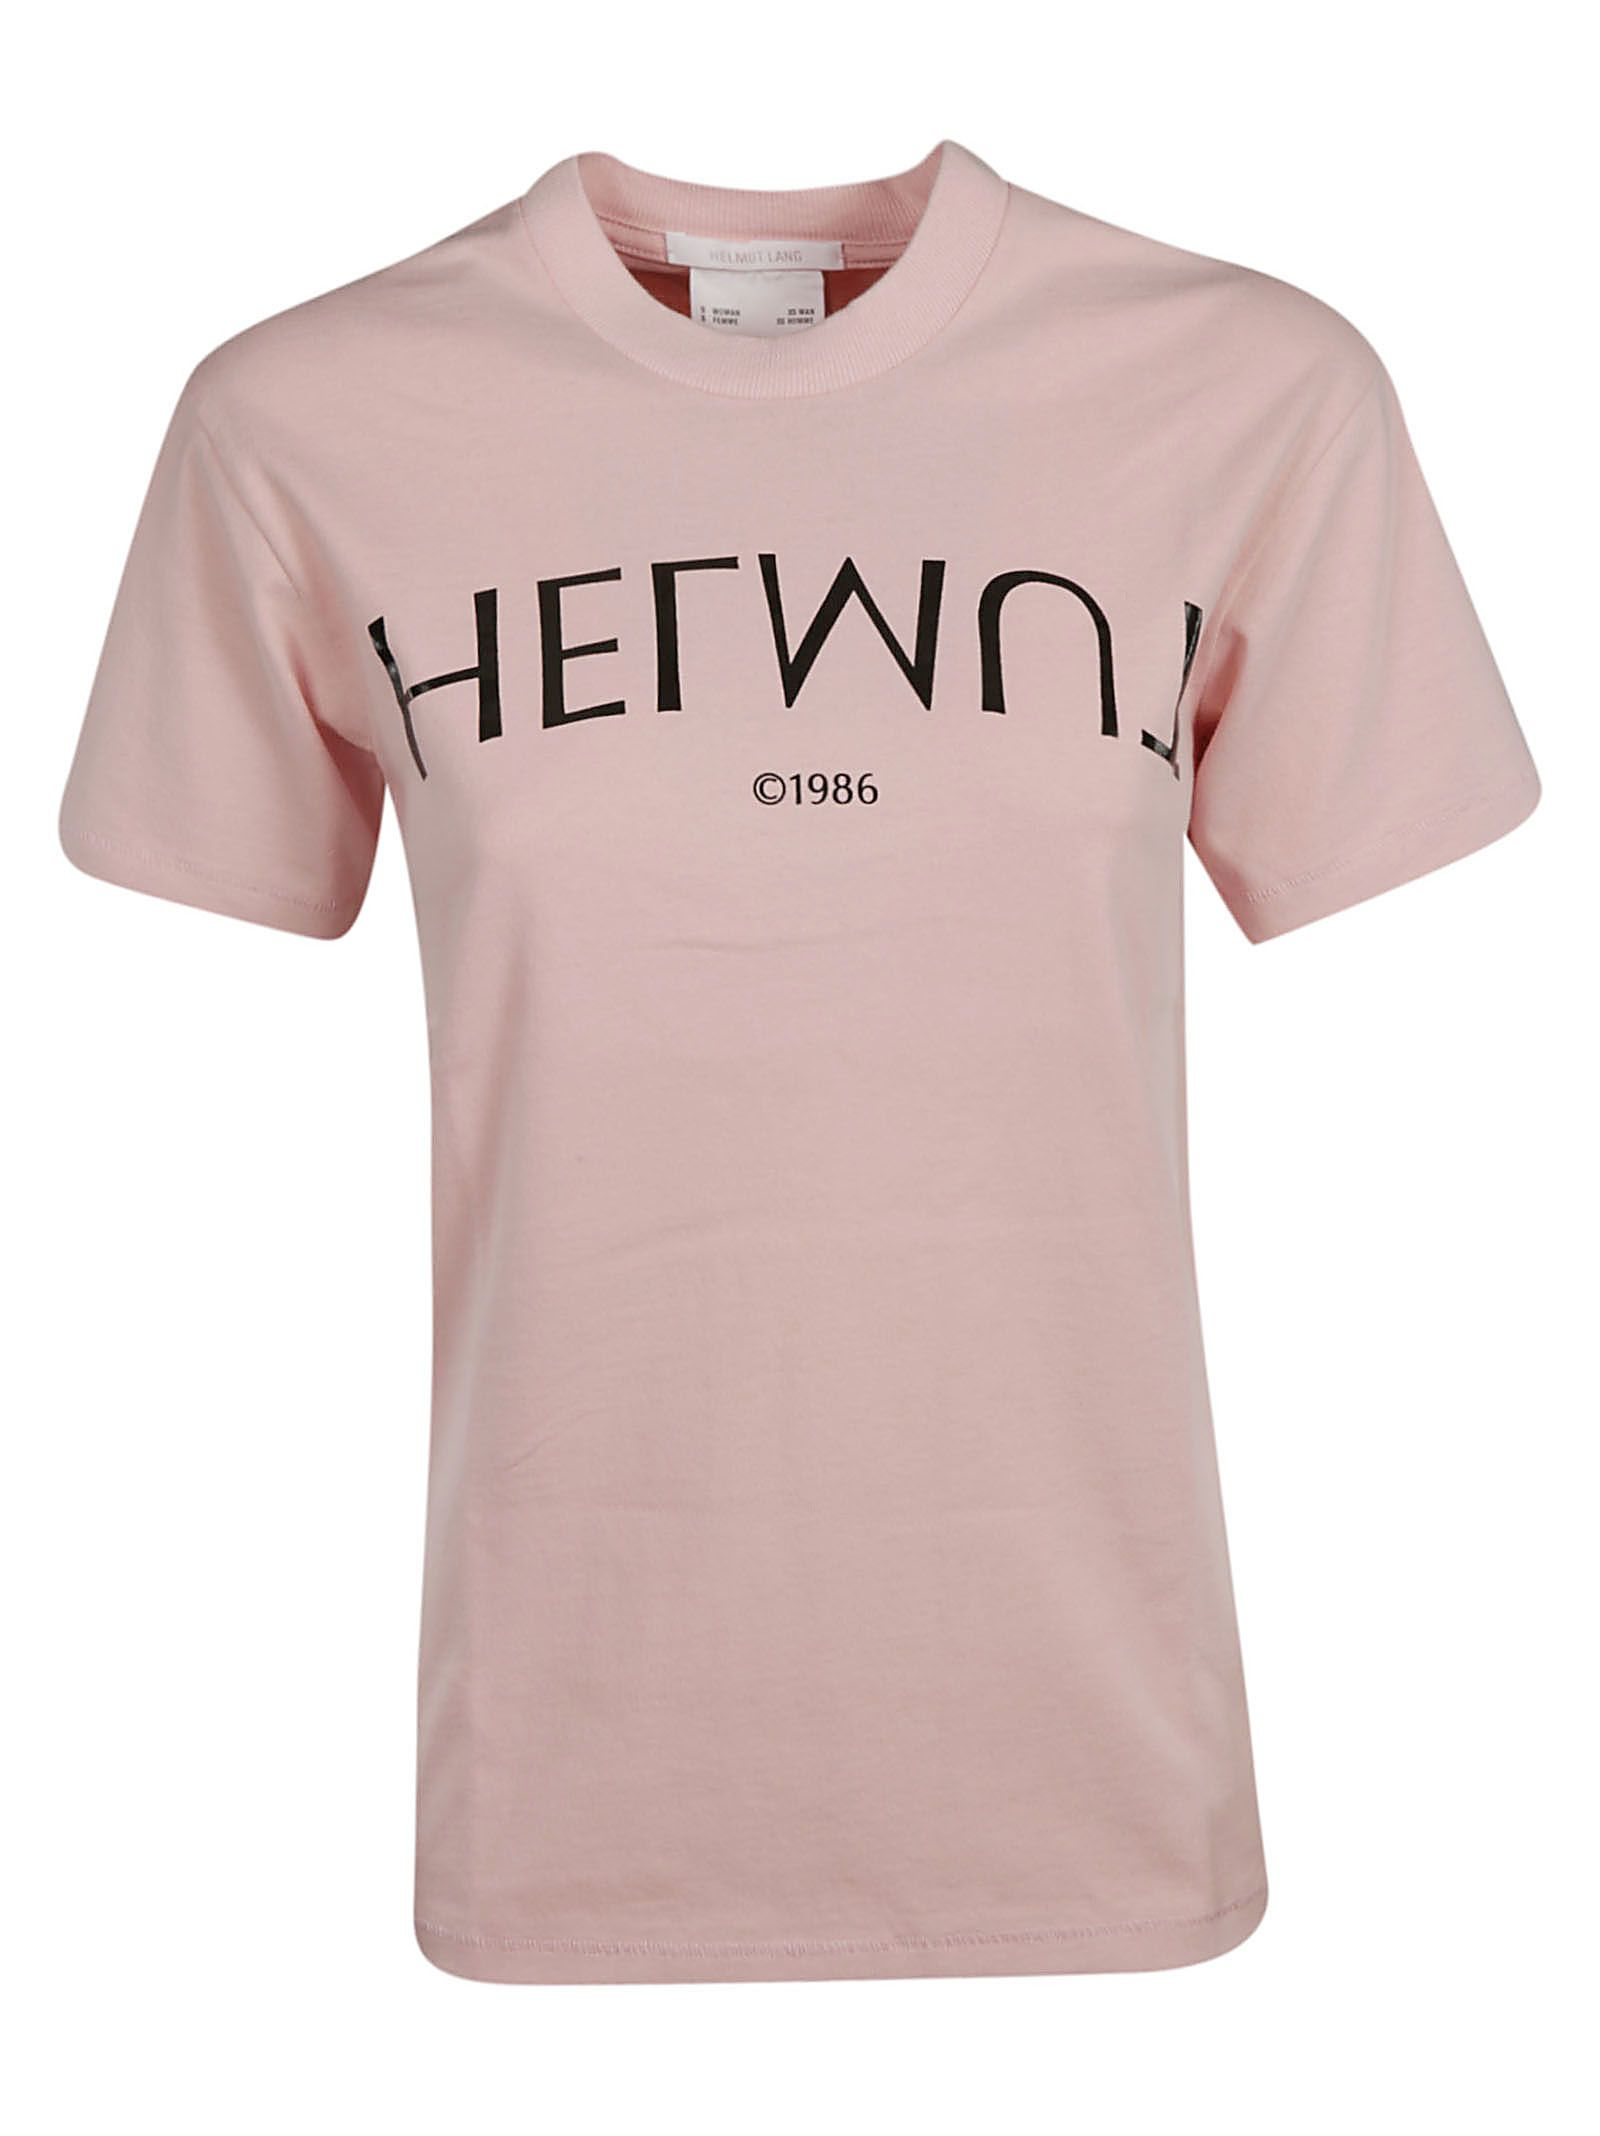 Logo Hack Tee Crew Neck T-Shirt in Pink